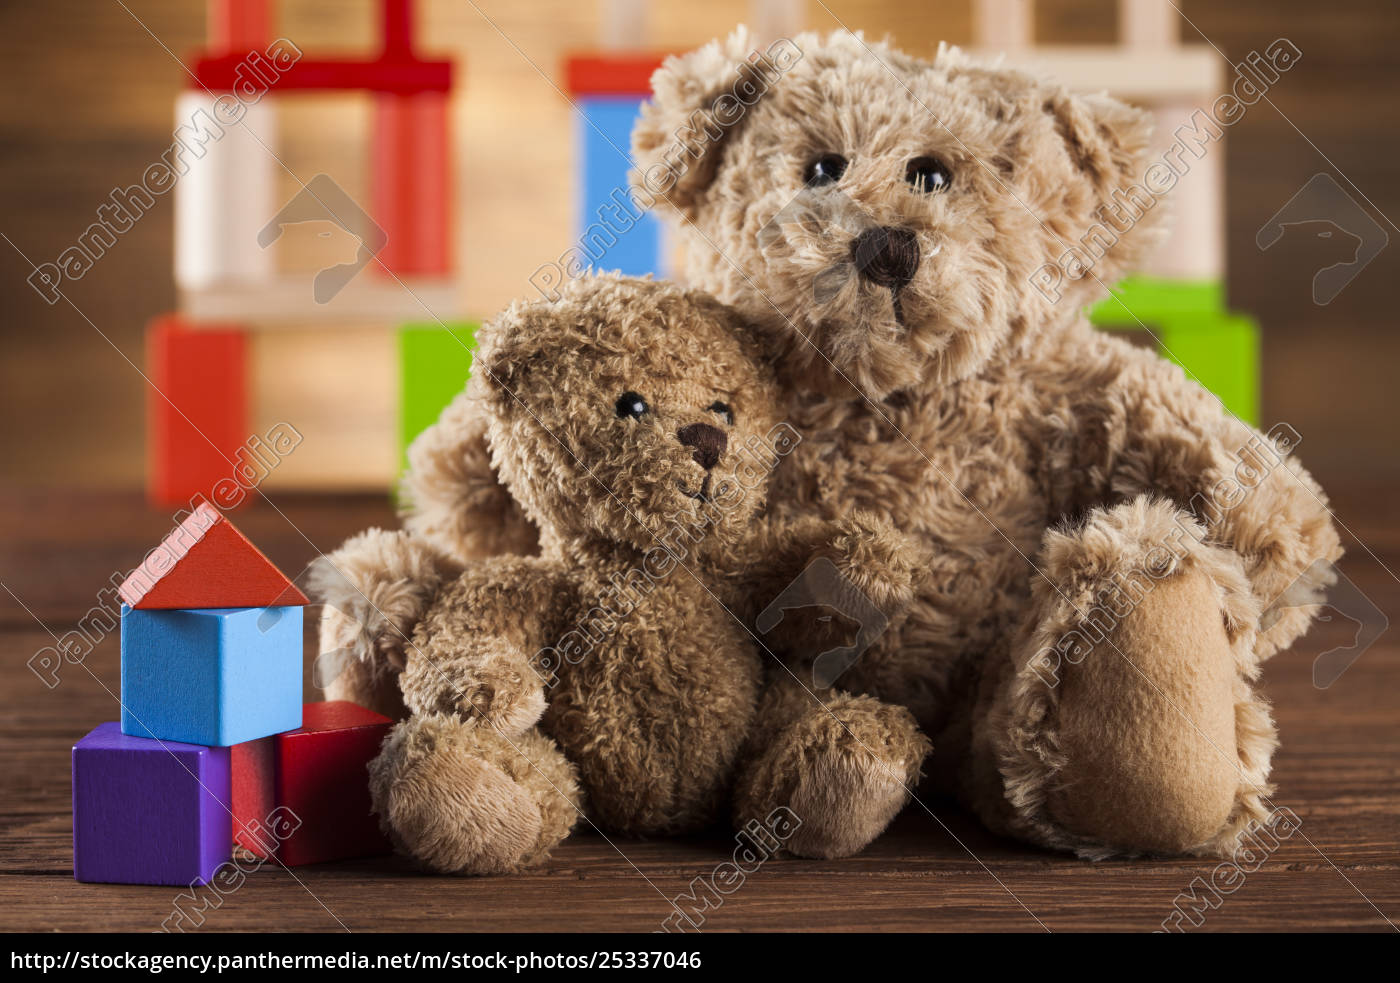 cute, teddy, bears, on, wooden, background - 25337046